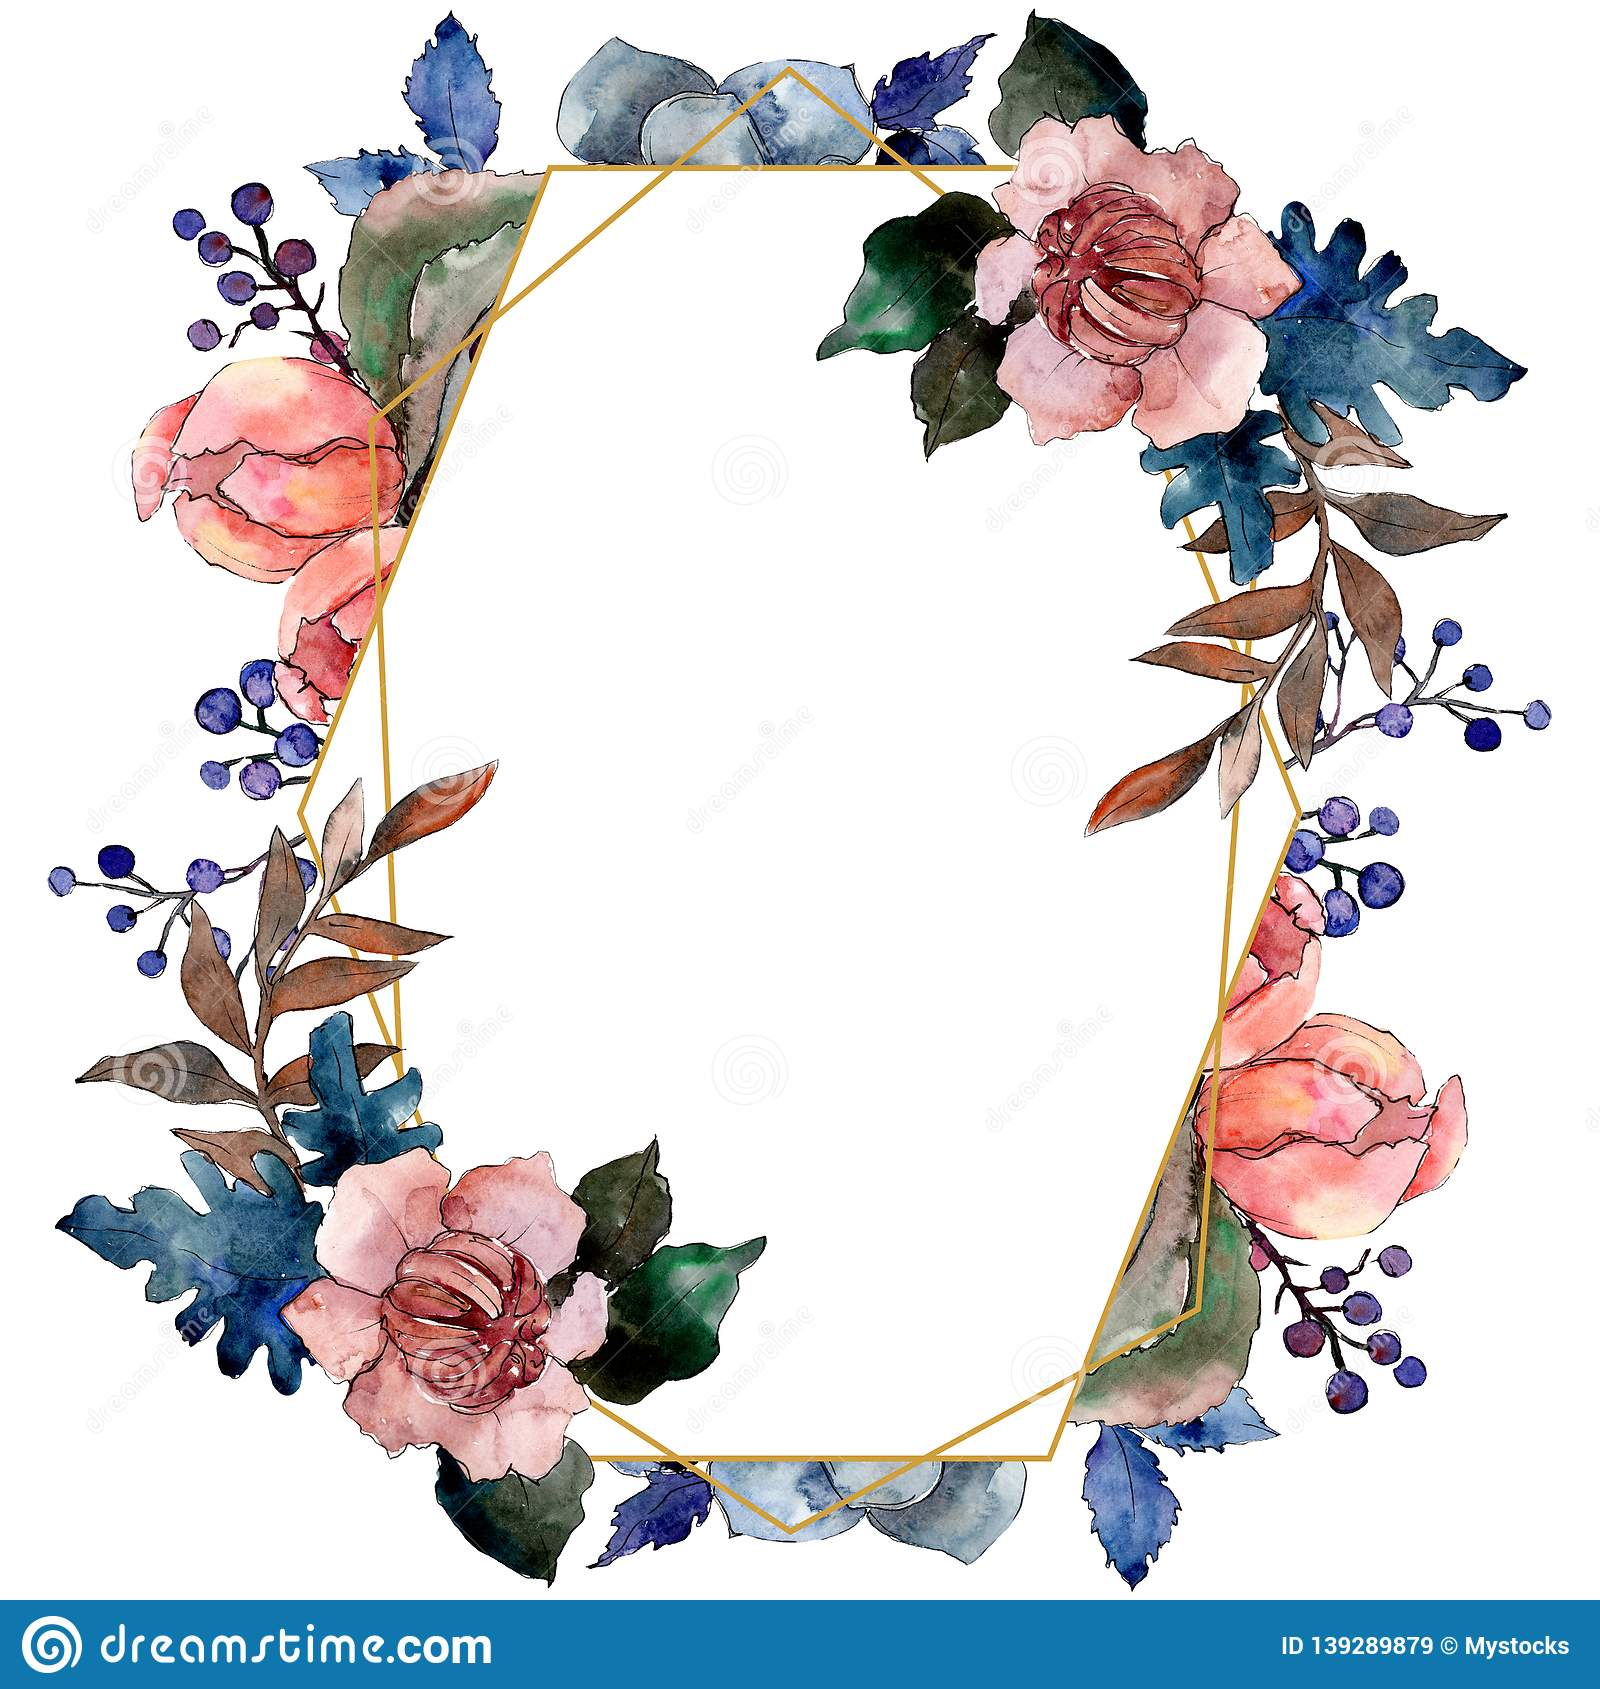 Peony And Succulent Bouquet Floral Flower Watercolor Background Illustration Set Frame Border Ornament Square Stock Illustration Illustration Of Decoration Isolated 139289879